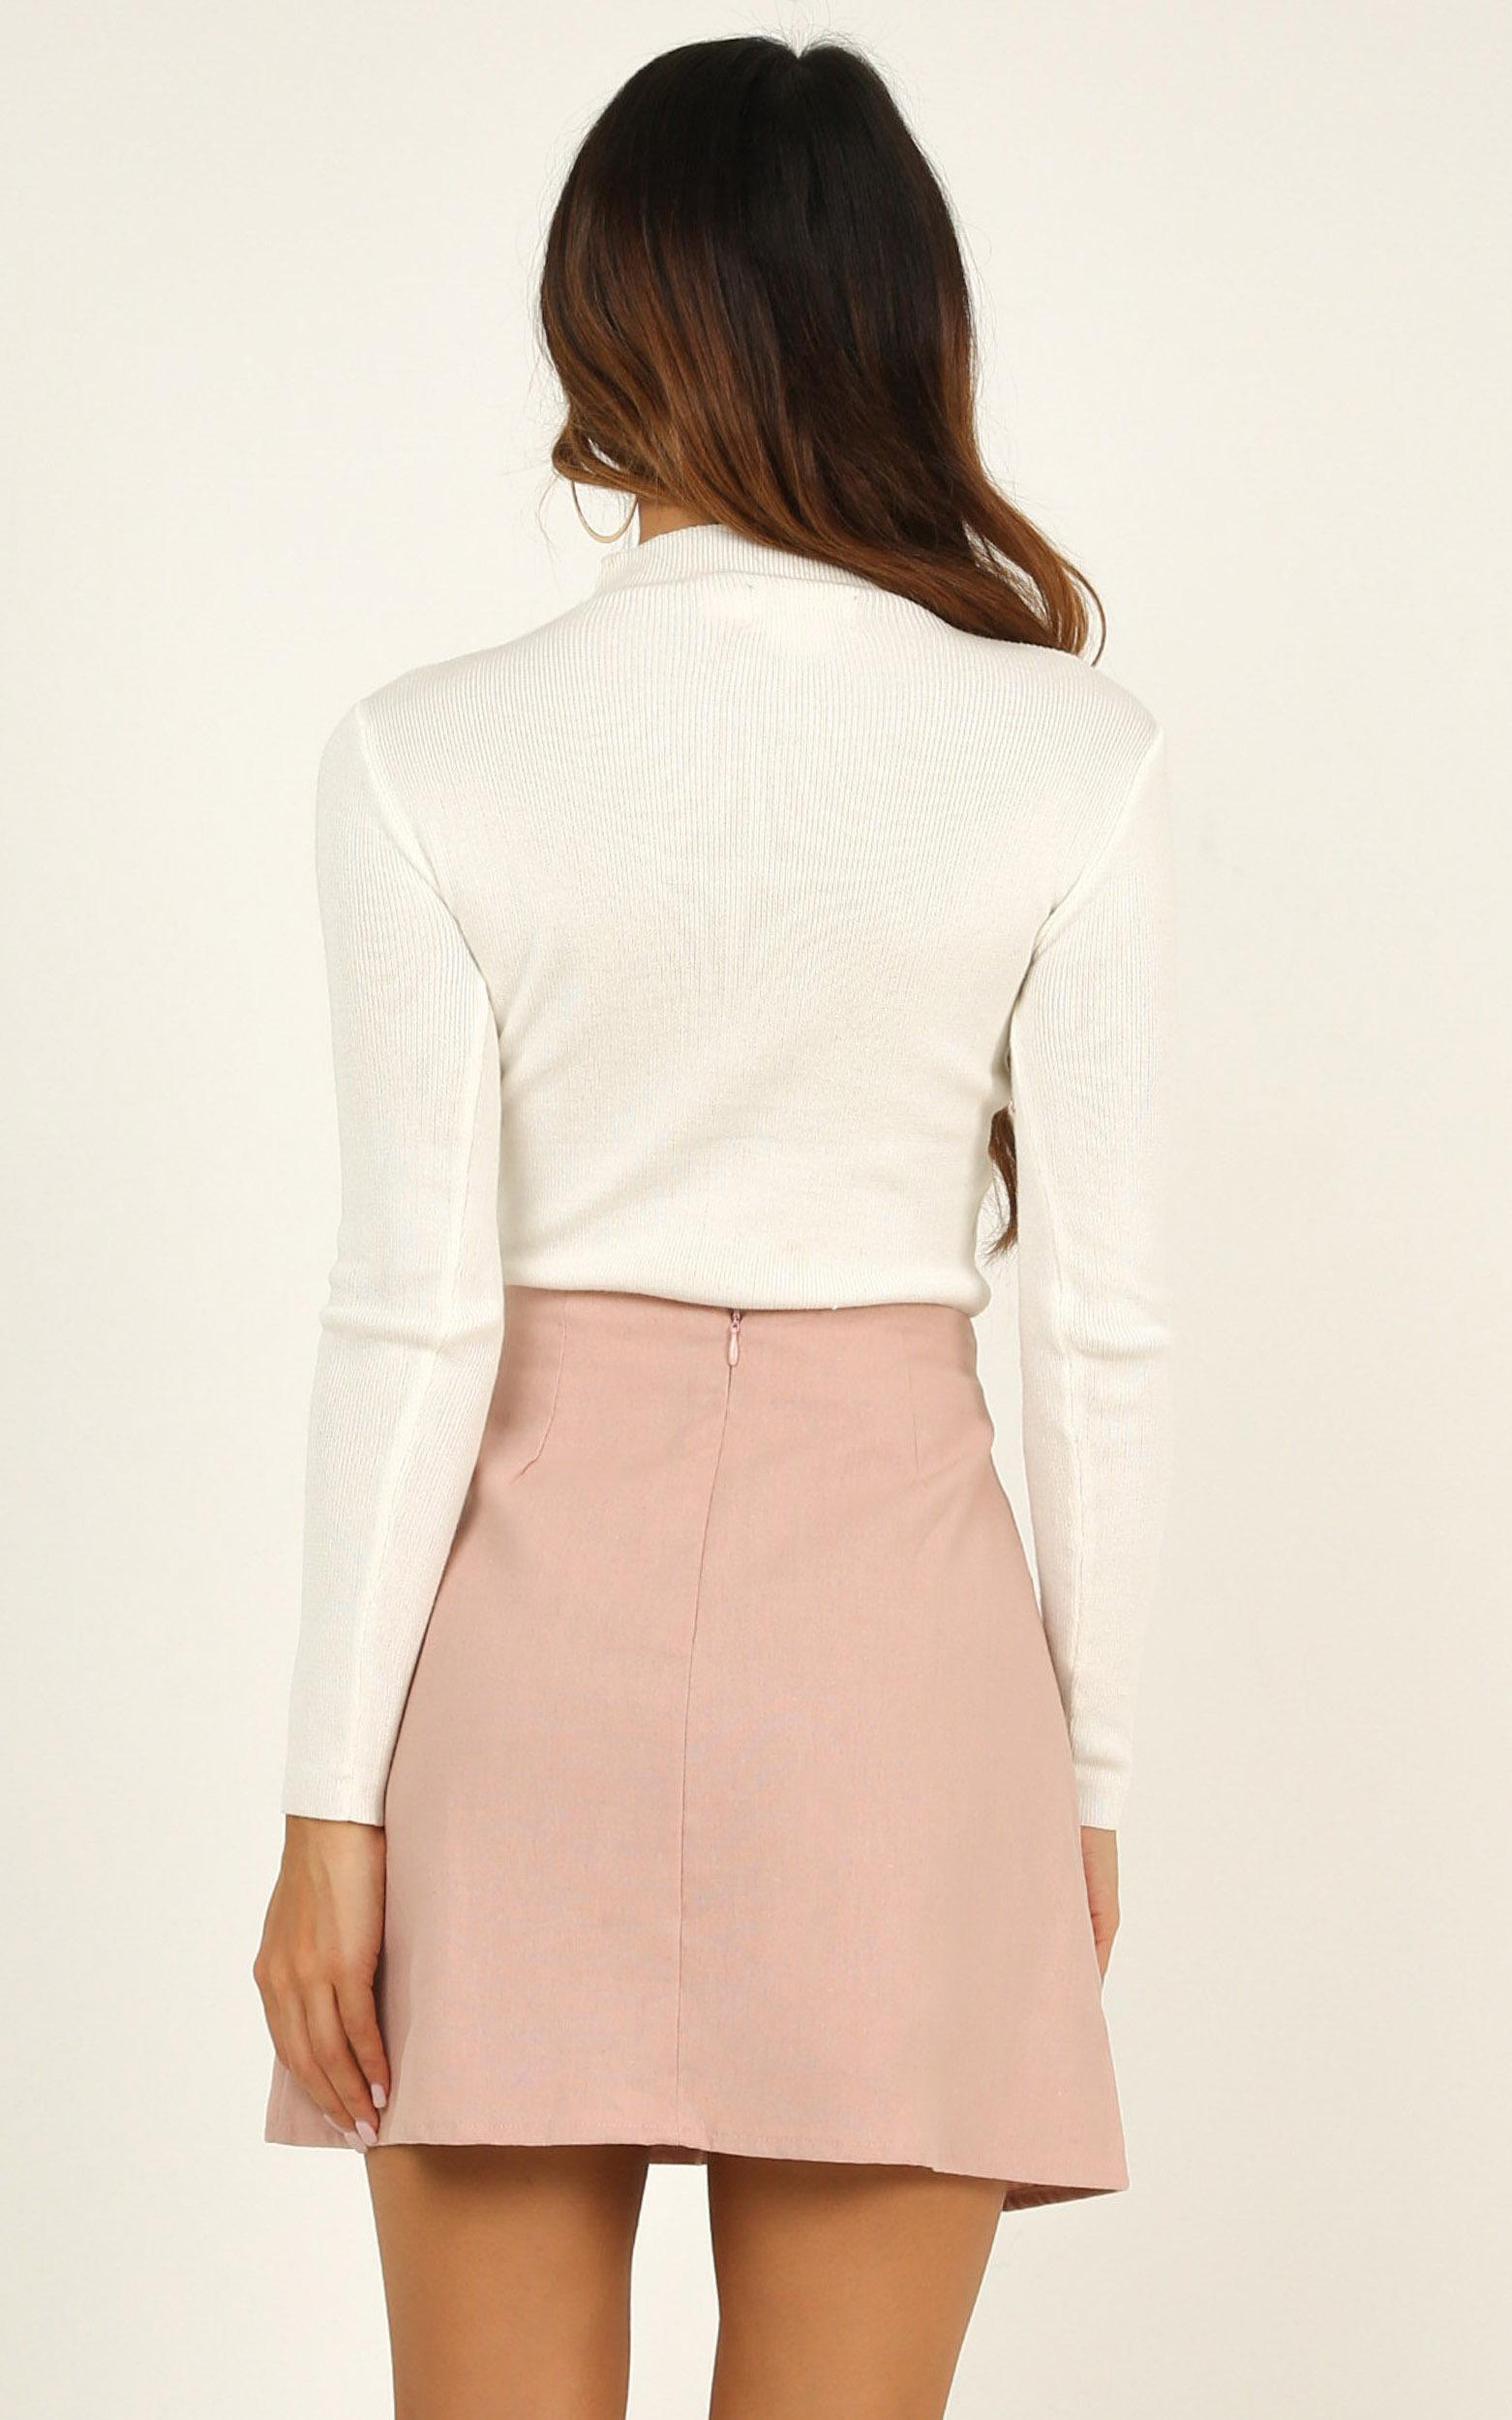 How About It skirt in blush linen look - 20 (XXXXL), Blush, hi-res image number null